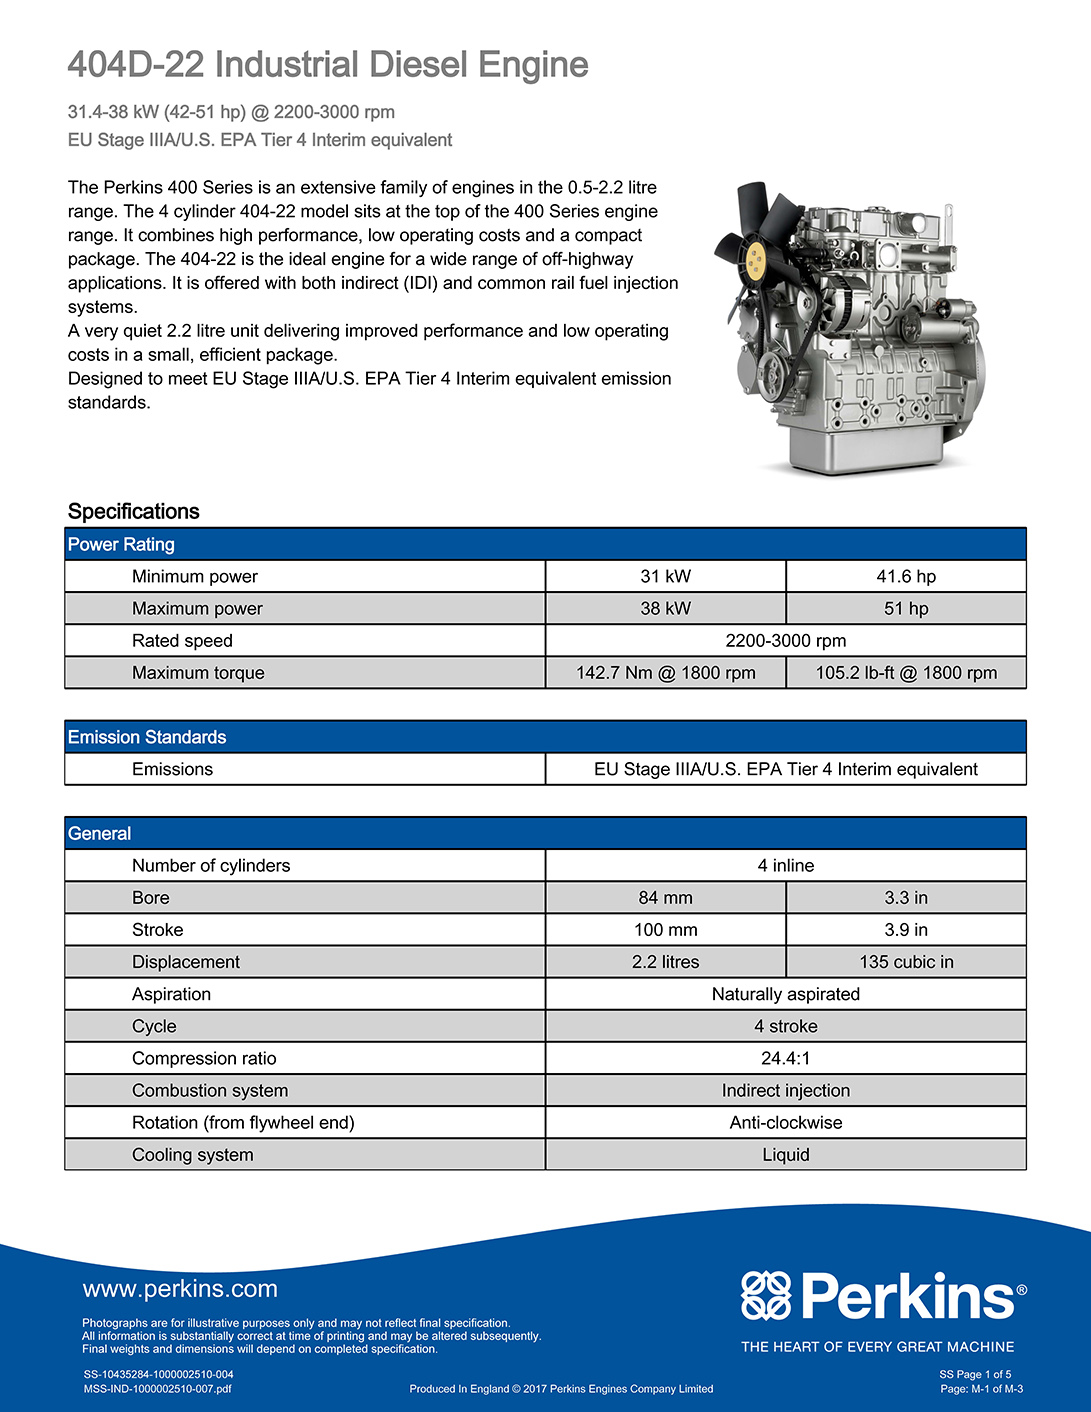 404D-22 Industrial Diesel Engine_SIME DARBY ELCO POWER SYSTEMS LIMITED